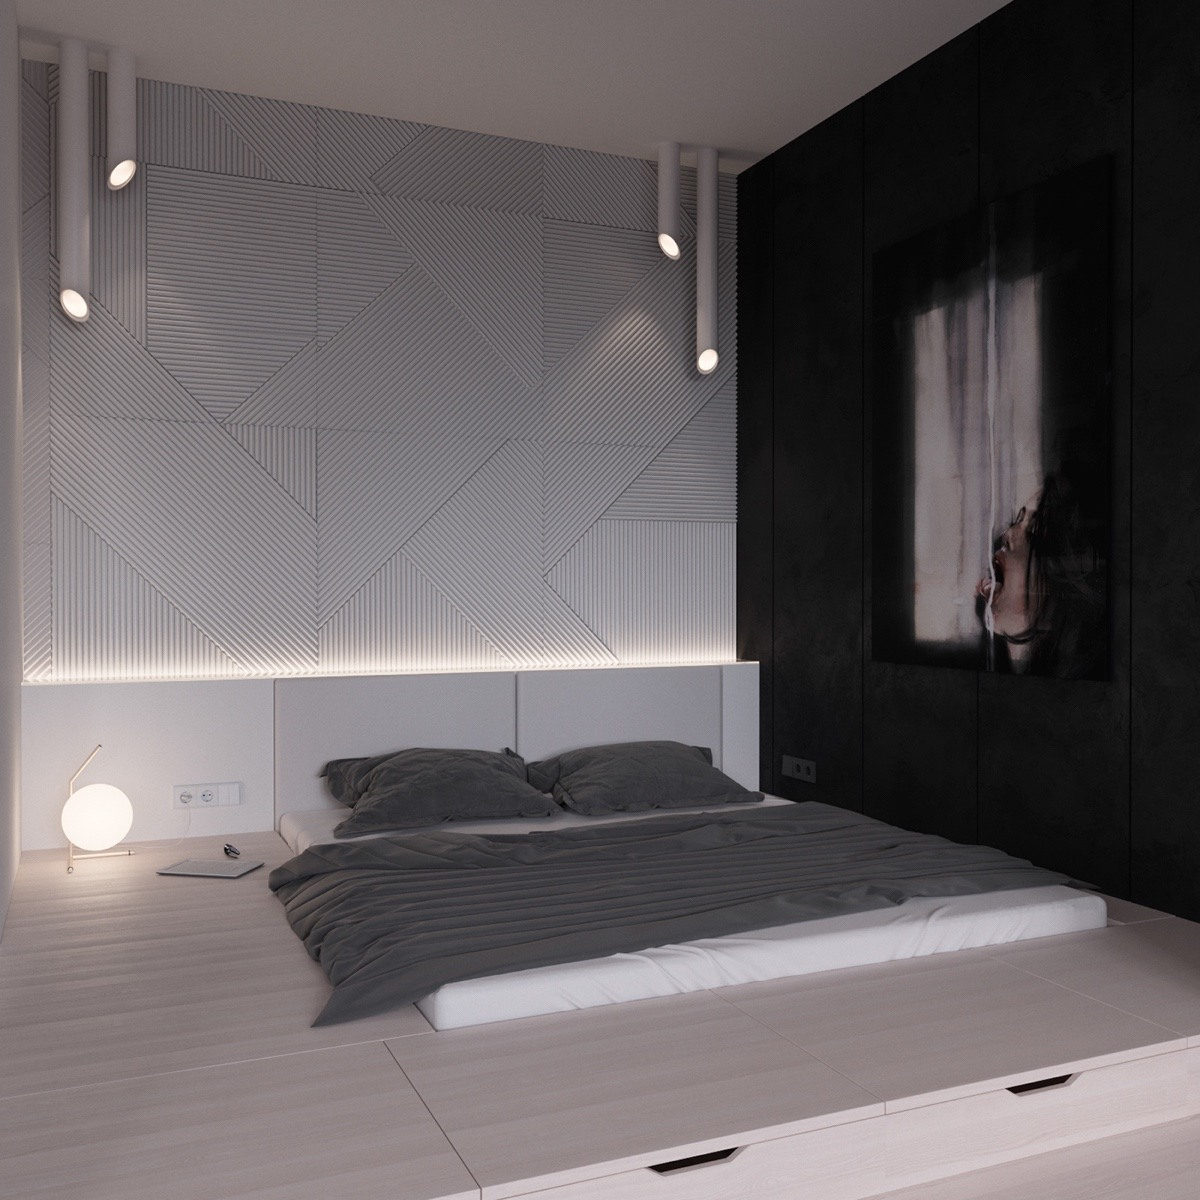 Simple Bedroom Room Ideas 40 serenely minimalist bedrooms to help you embrace simple comforts